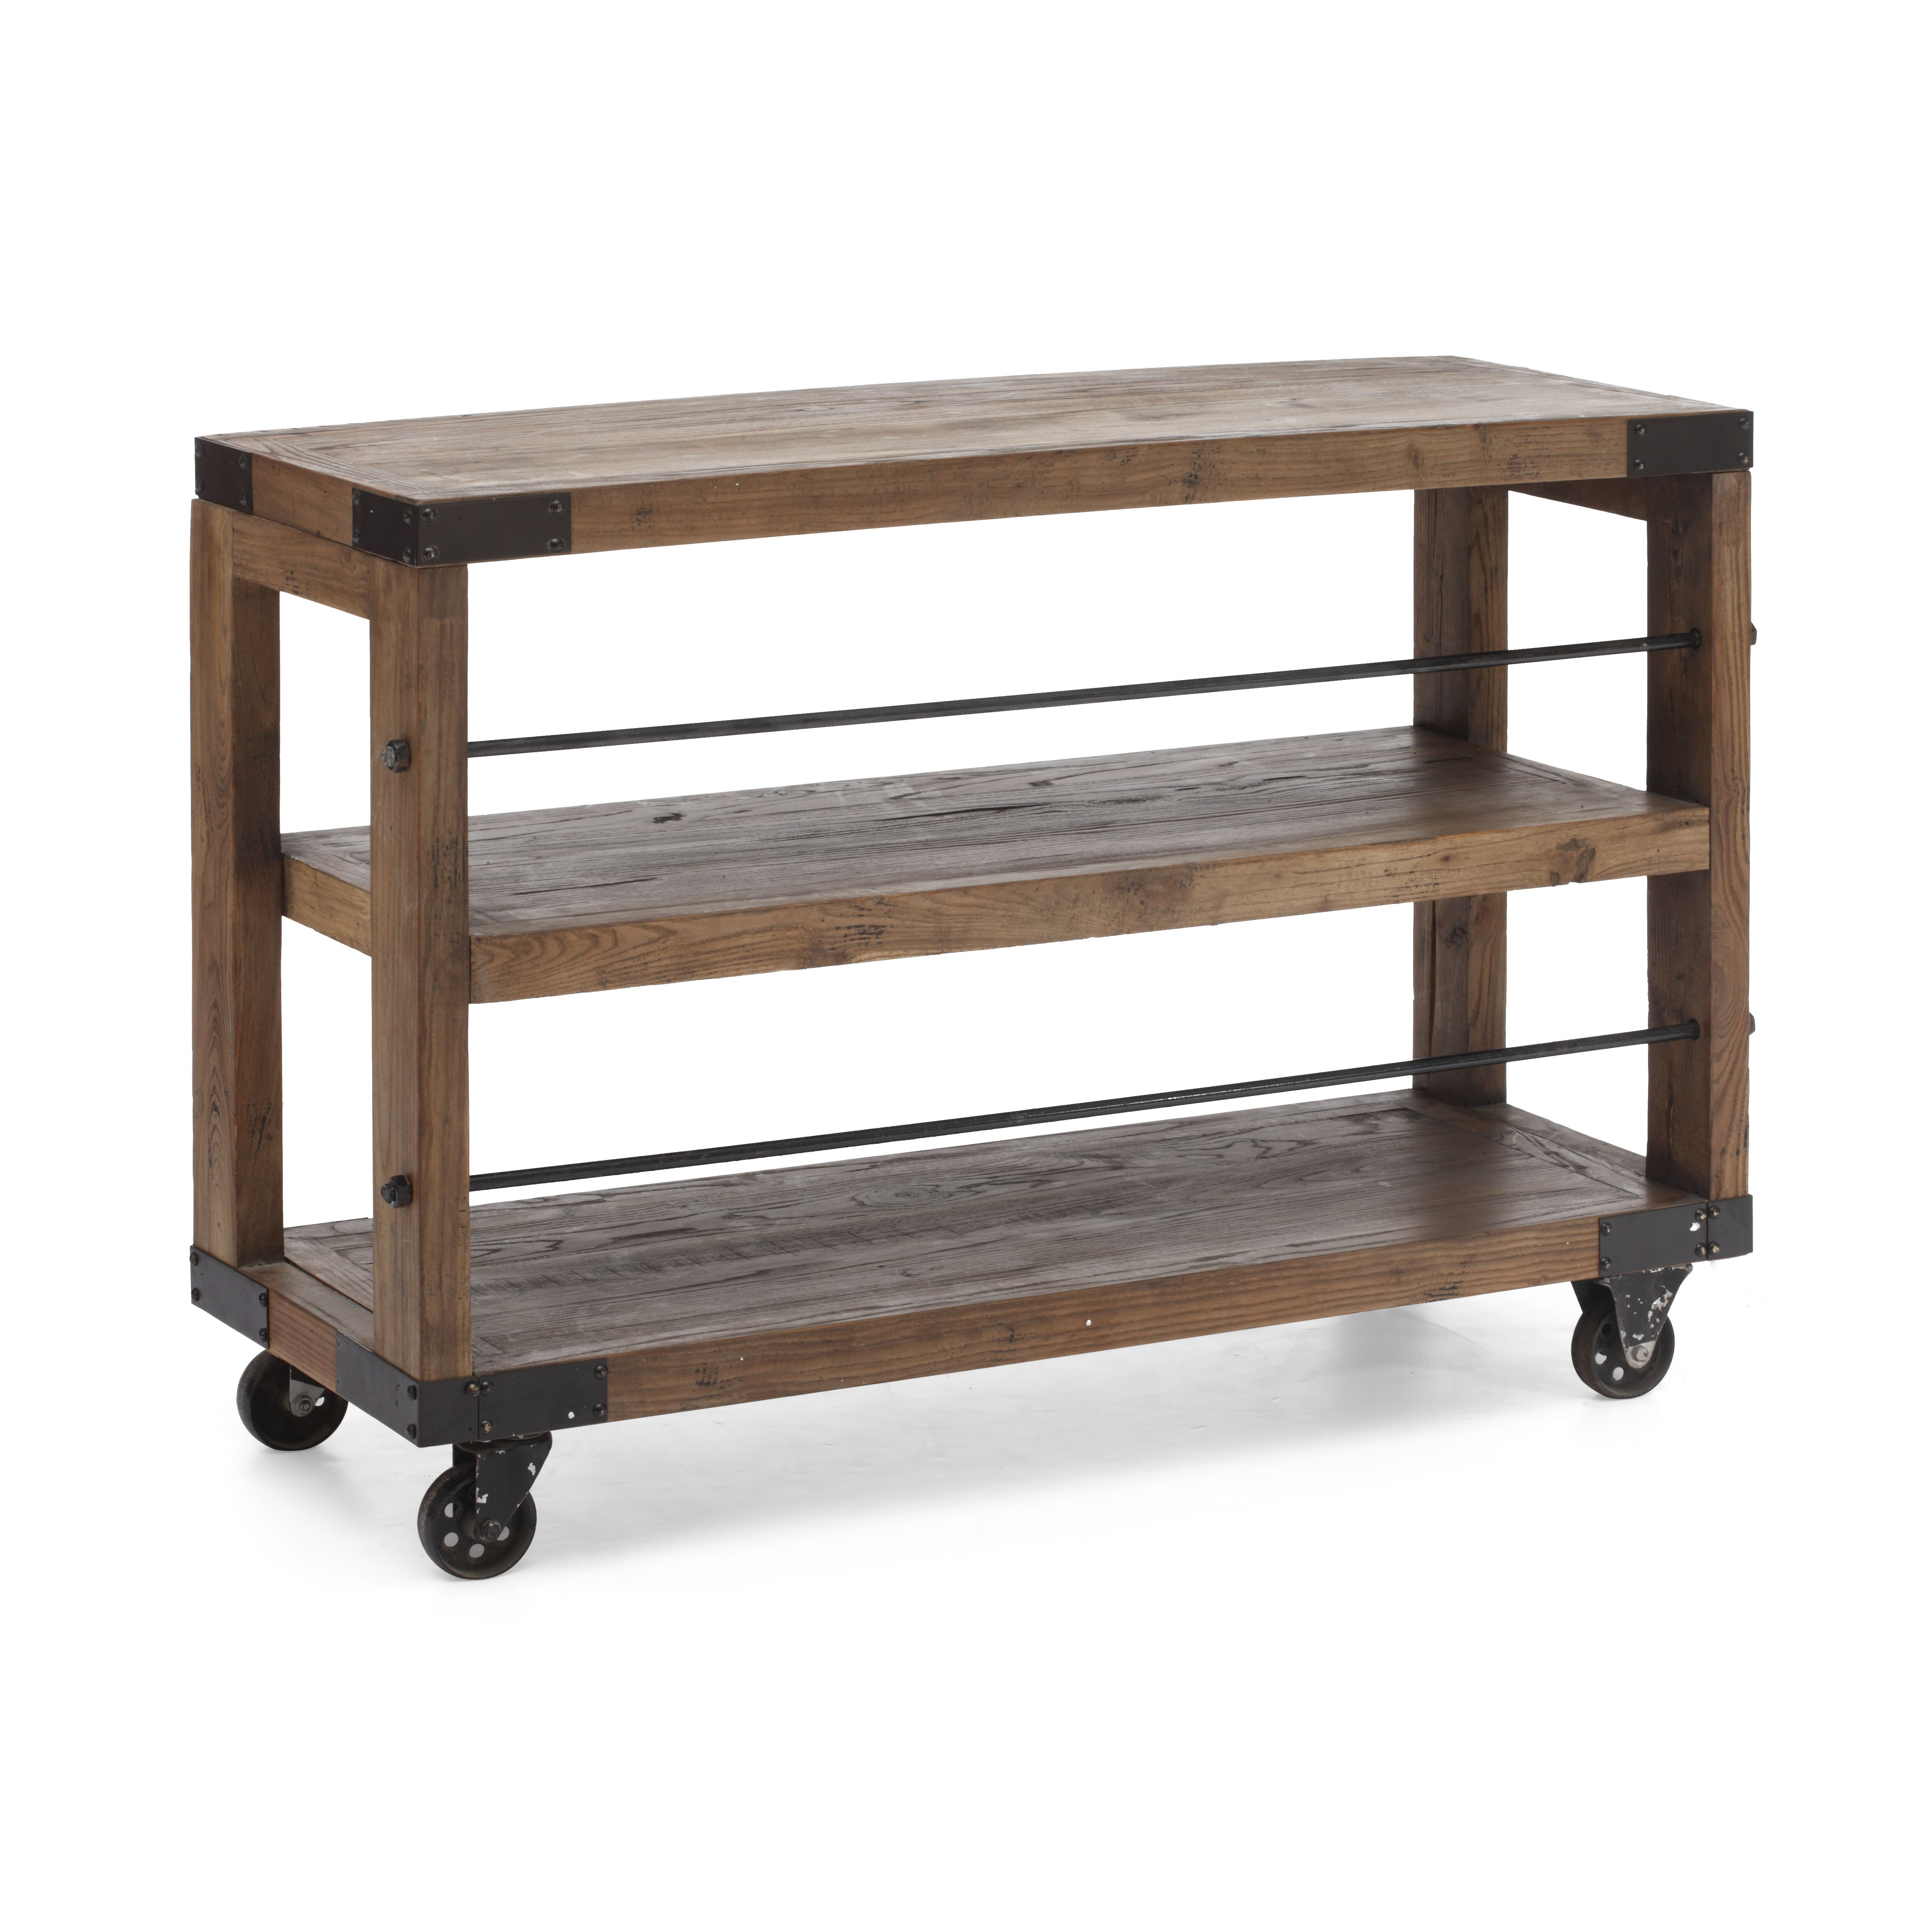 Bentley Industrial Metal And Wood Wheeled Kitchen Serving: Trent Austin Design Dublin Server & Reviews